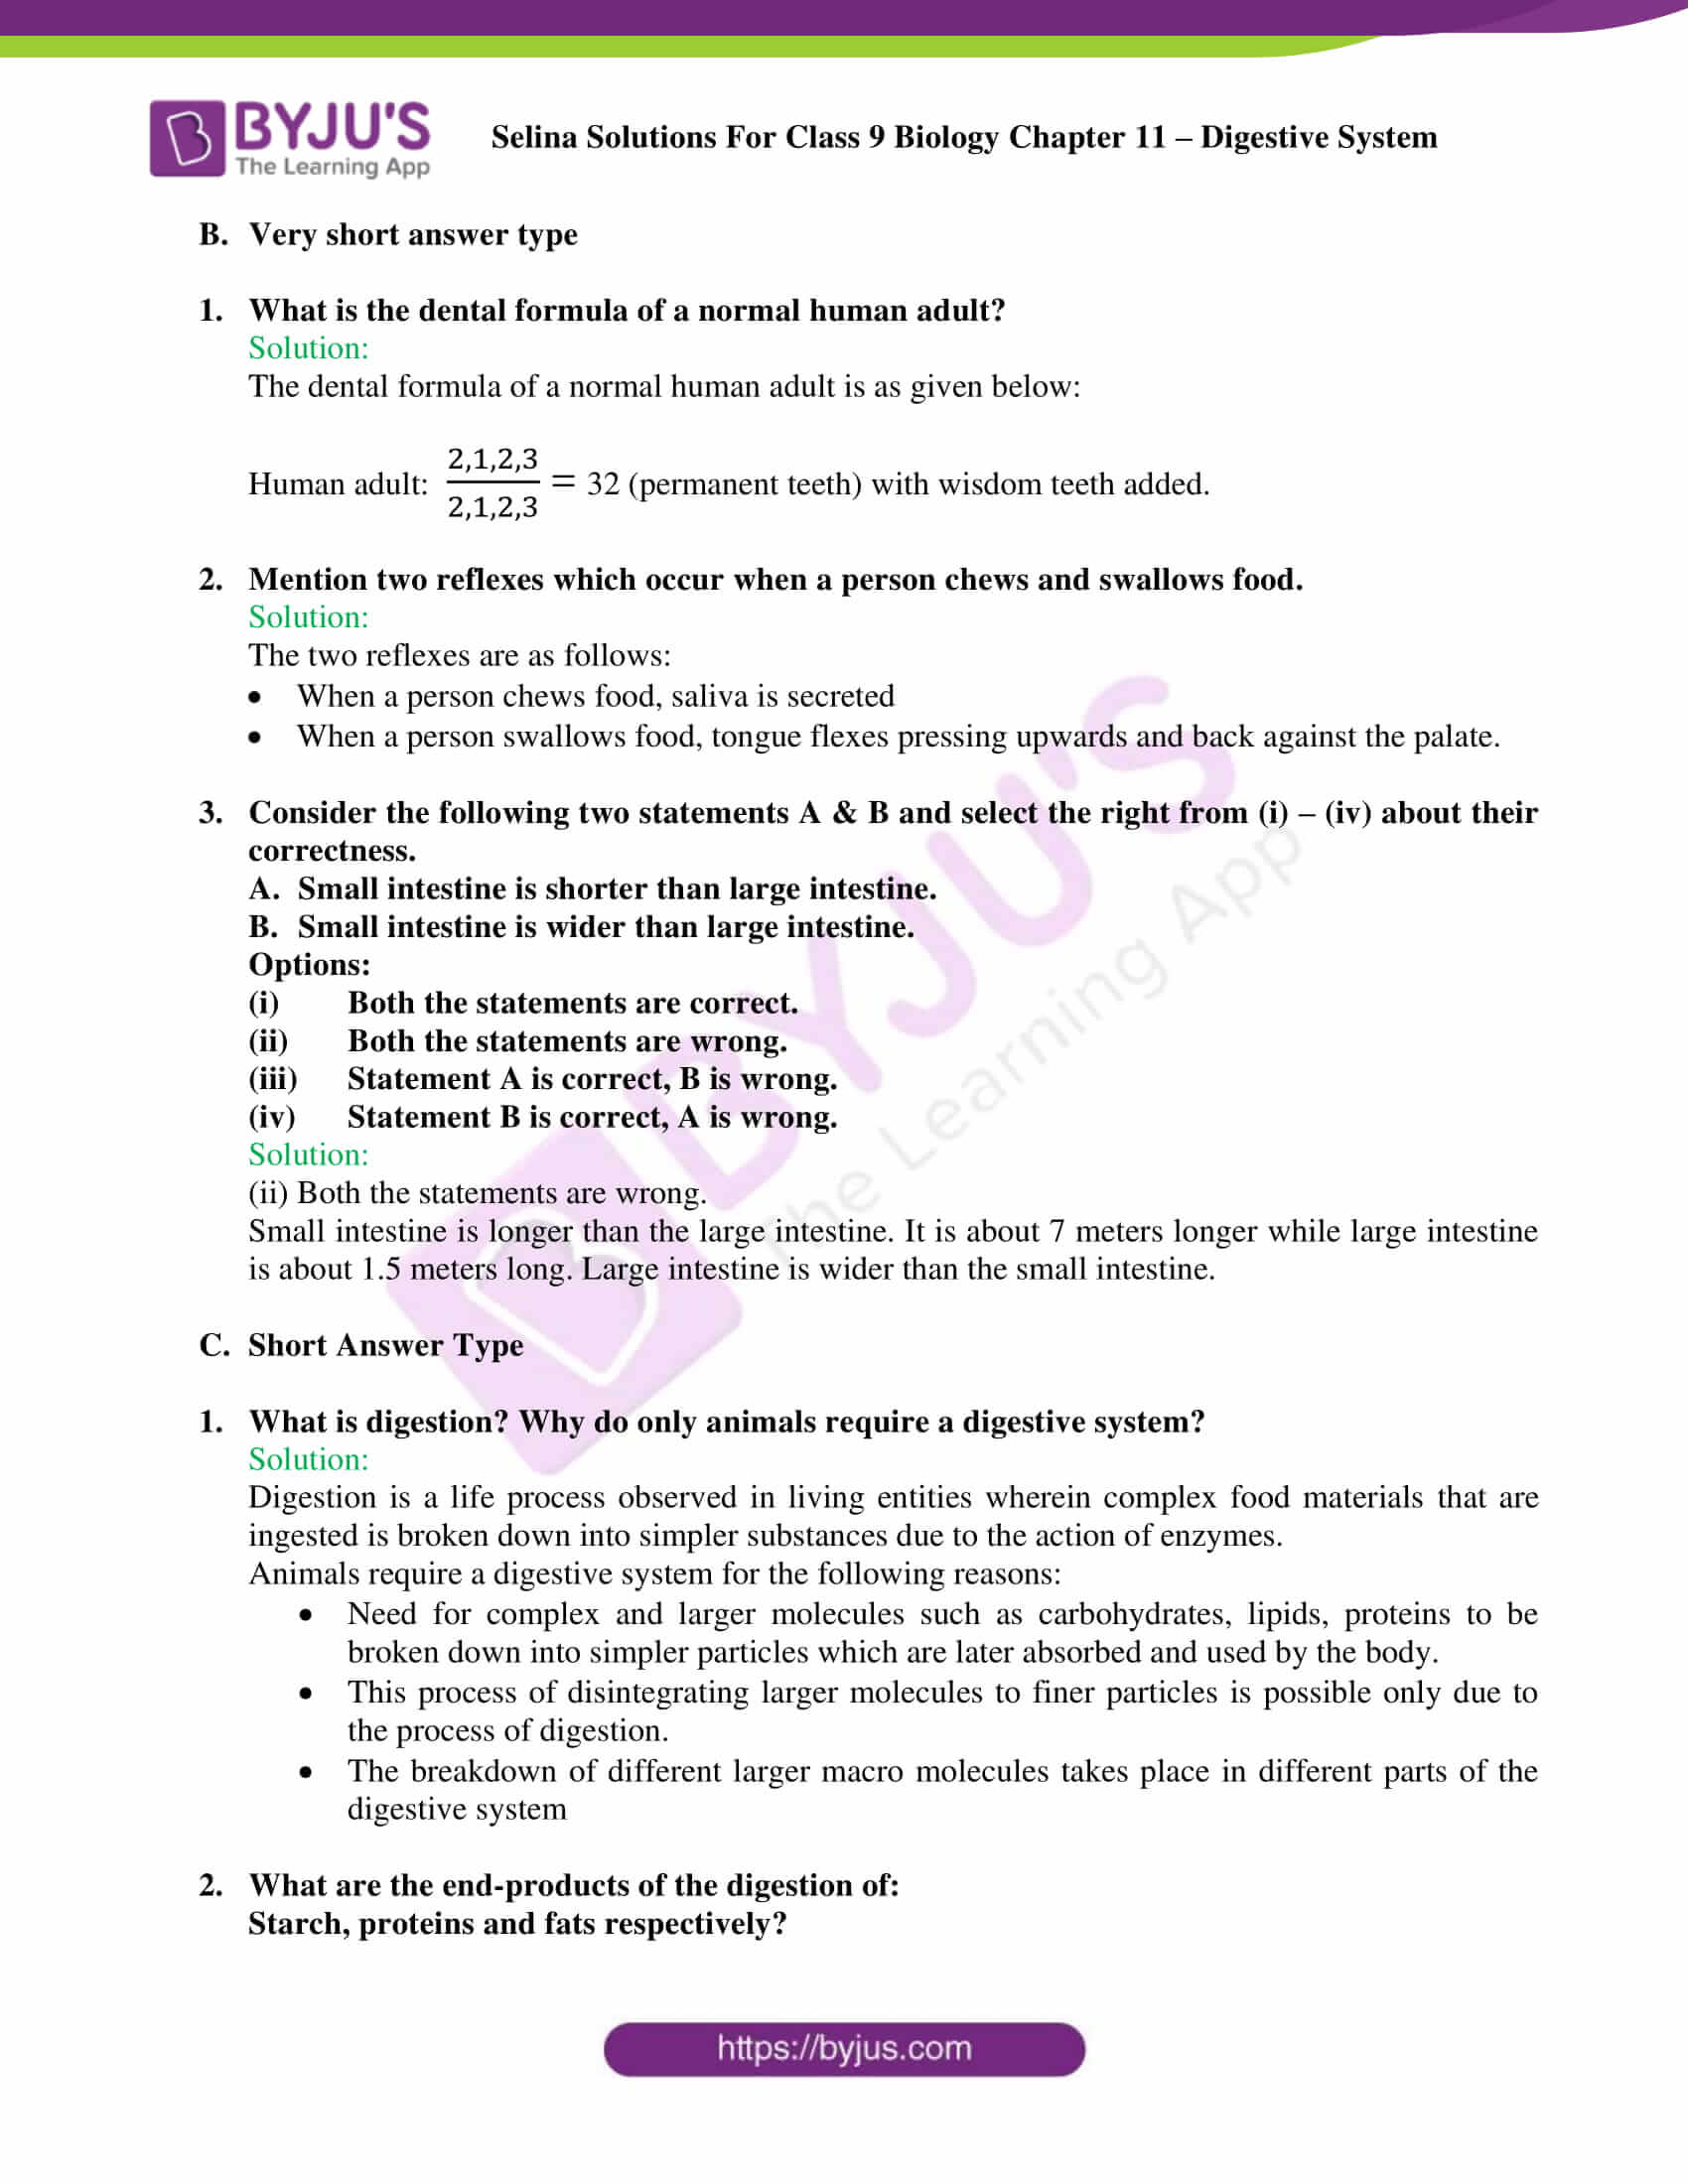 selina Solutions For Class 9 Biology Chapter 11 part 07